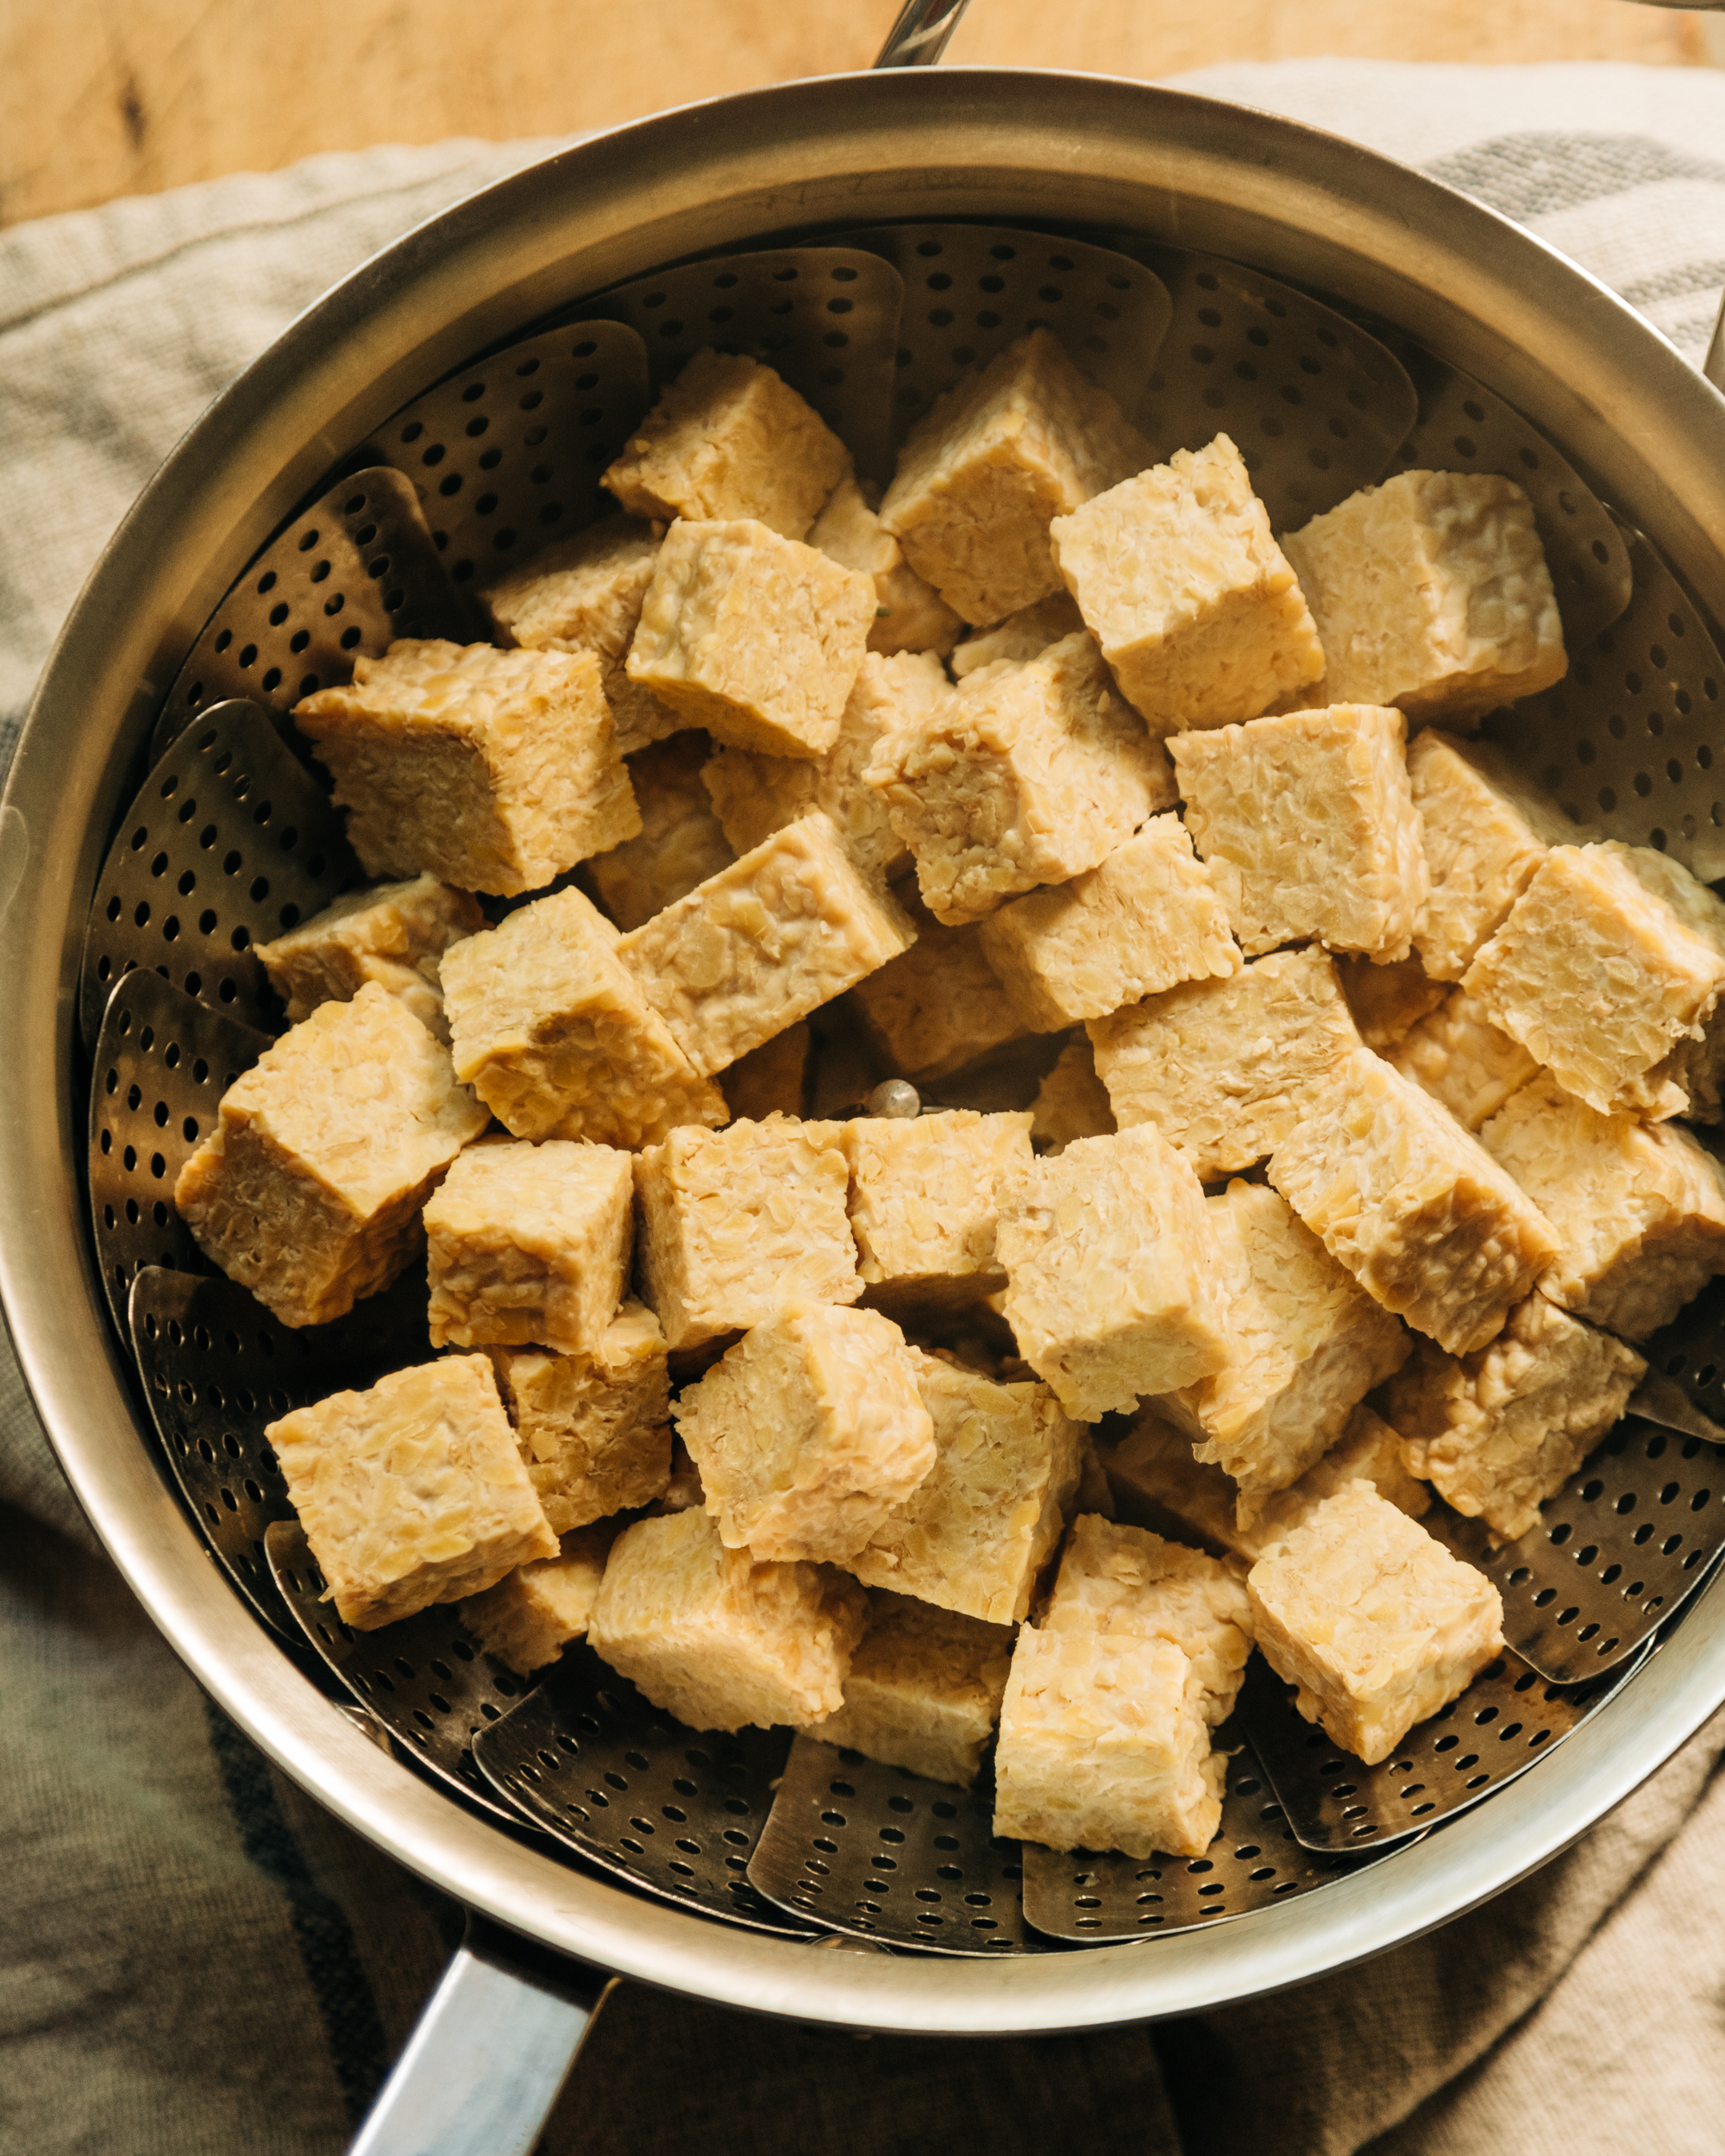 An overhead shot of tempeh chunks in a steamer basket that is set inside of a saucepan.